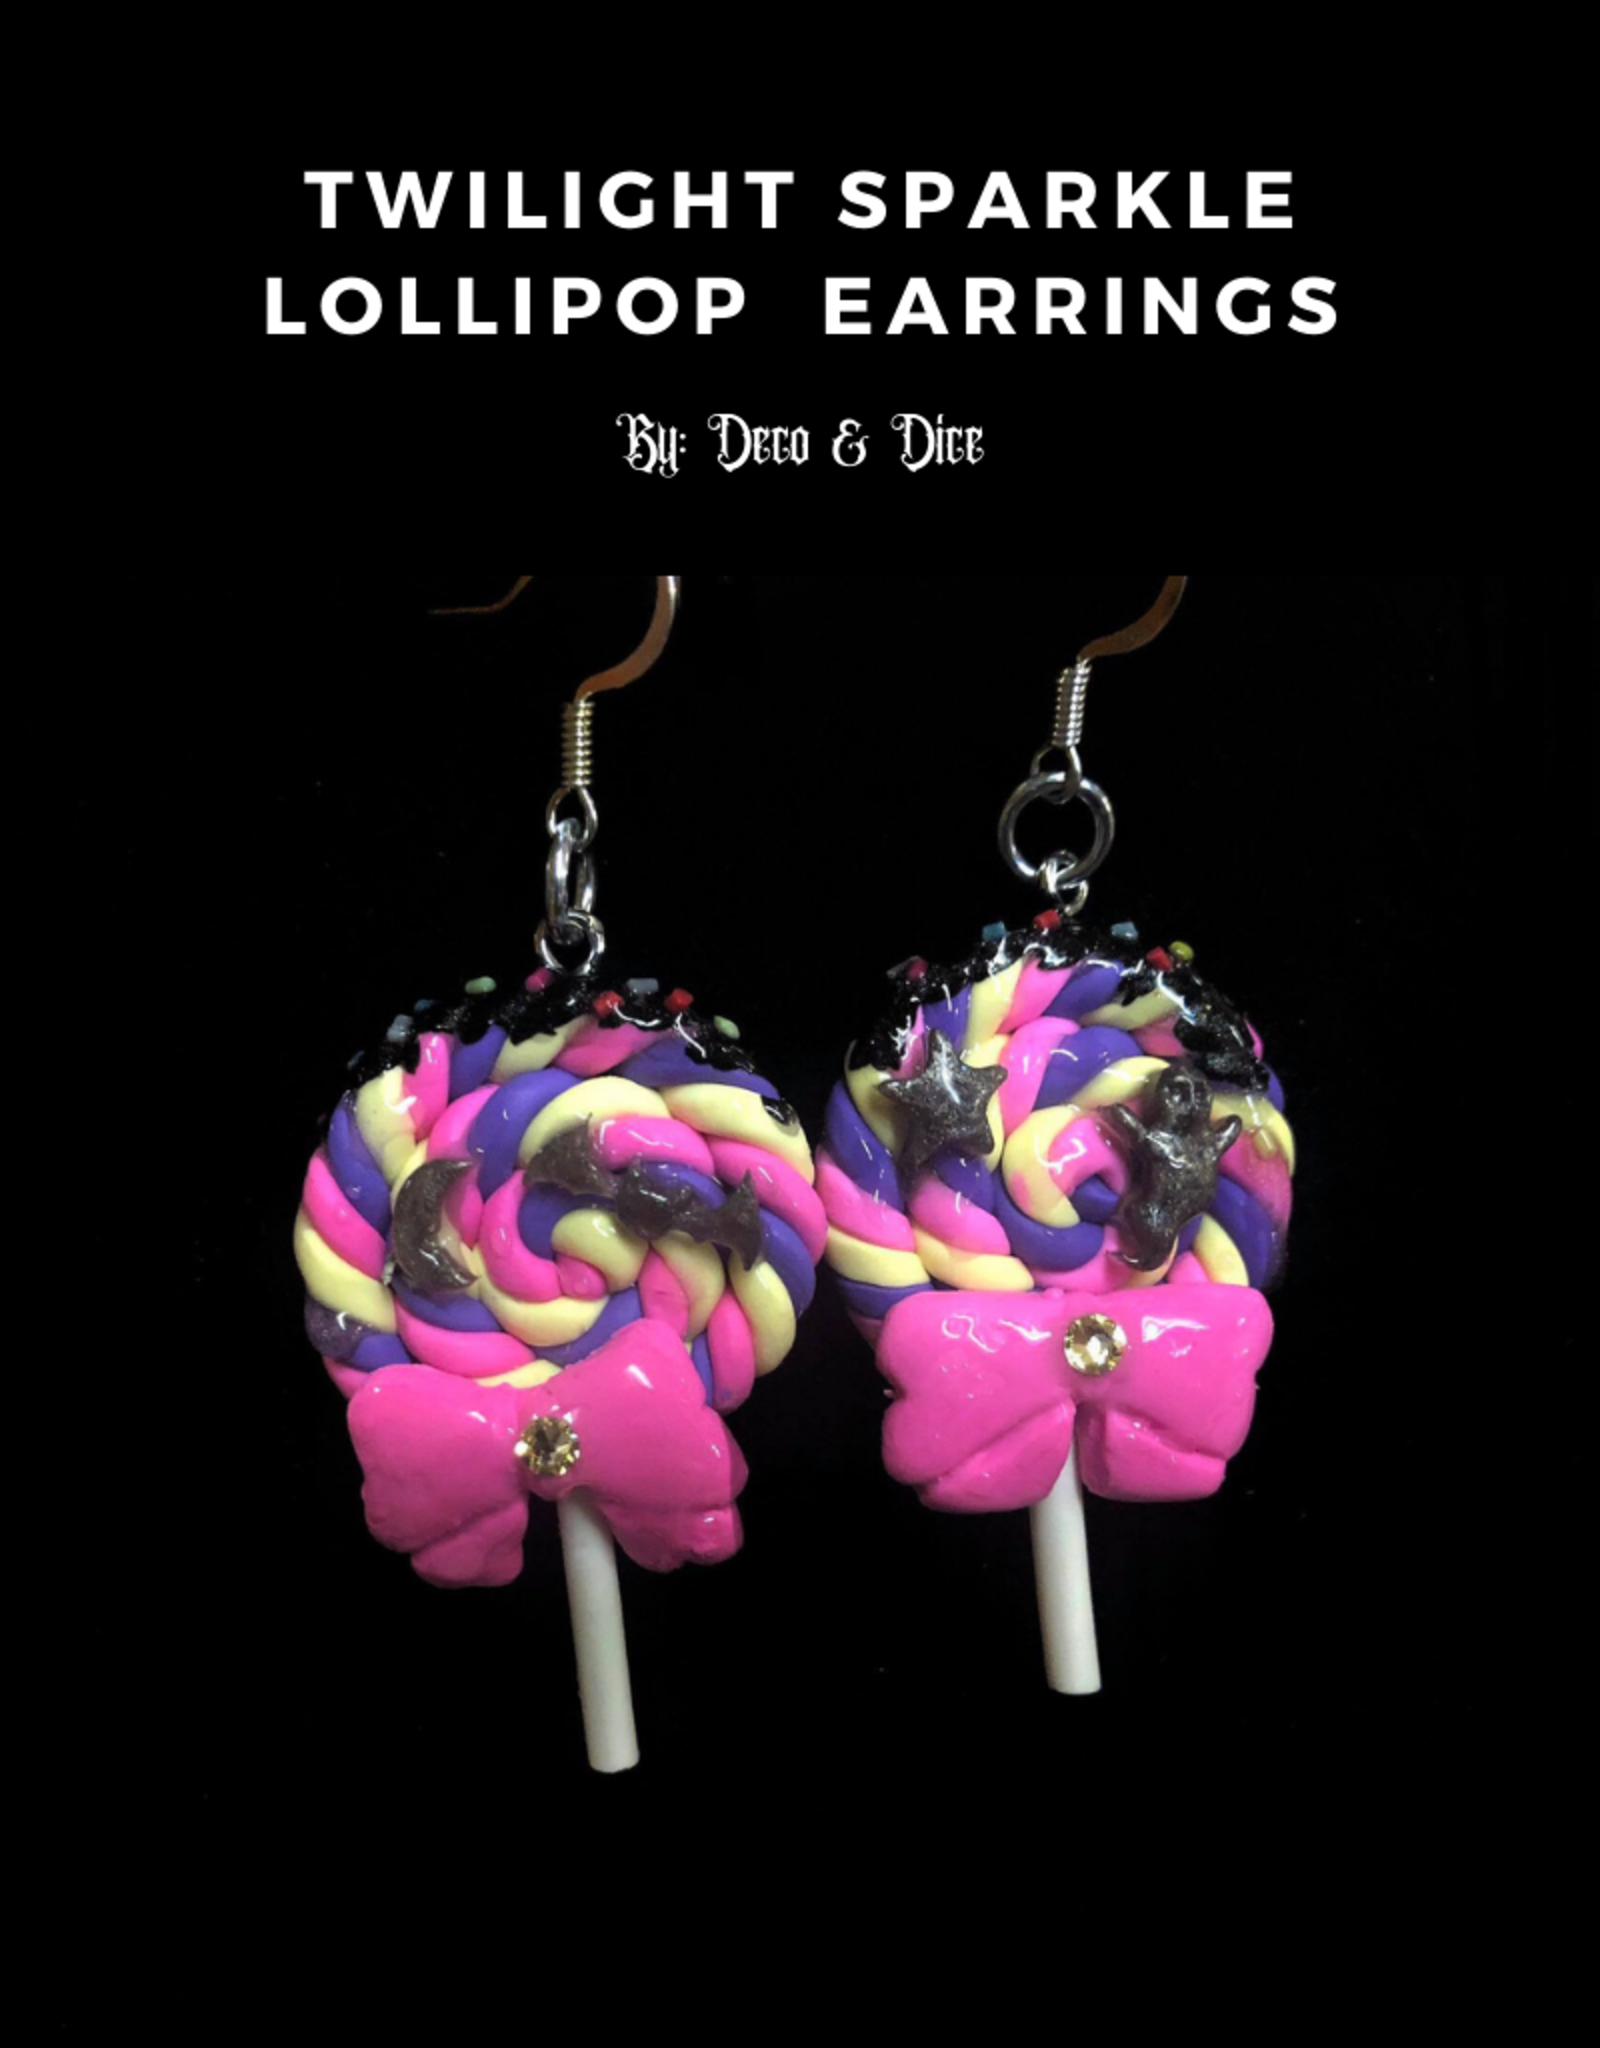 Lollipop Earrings